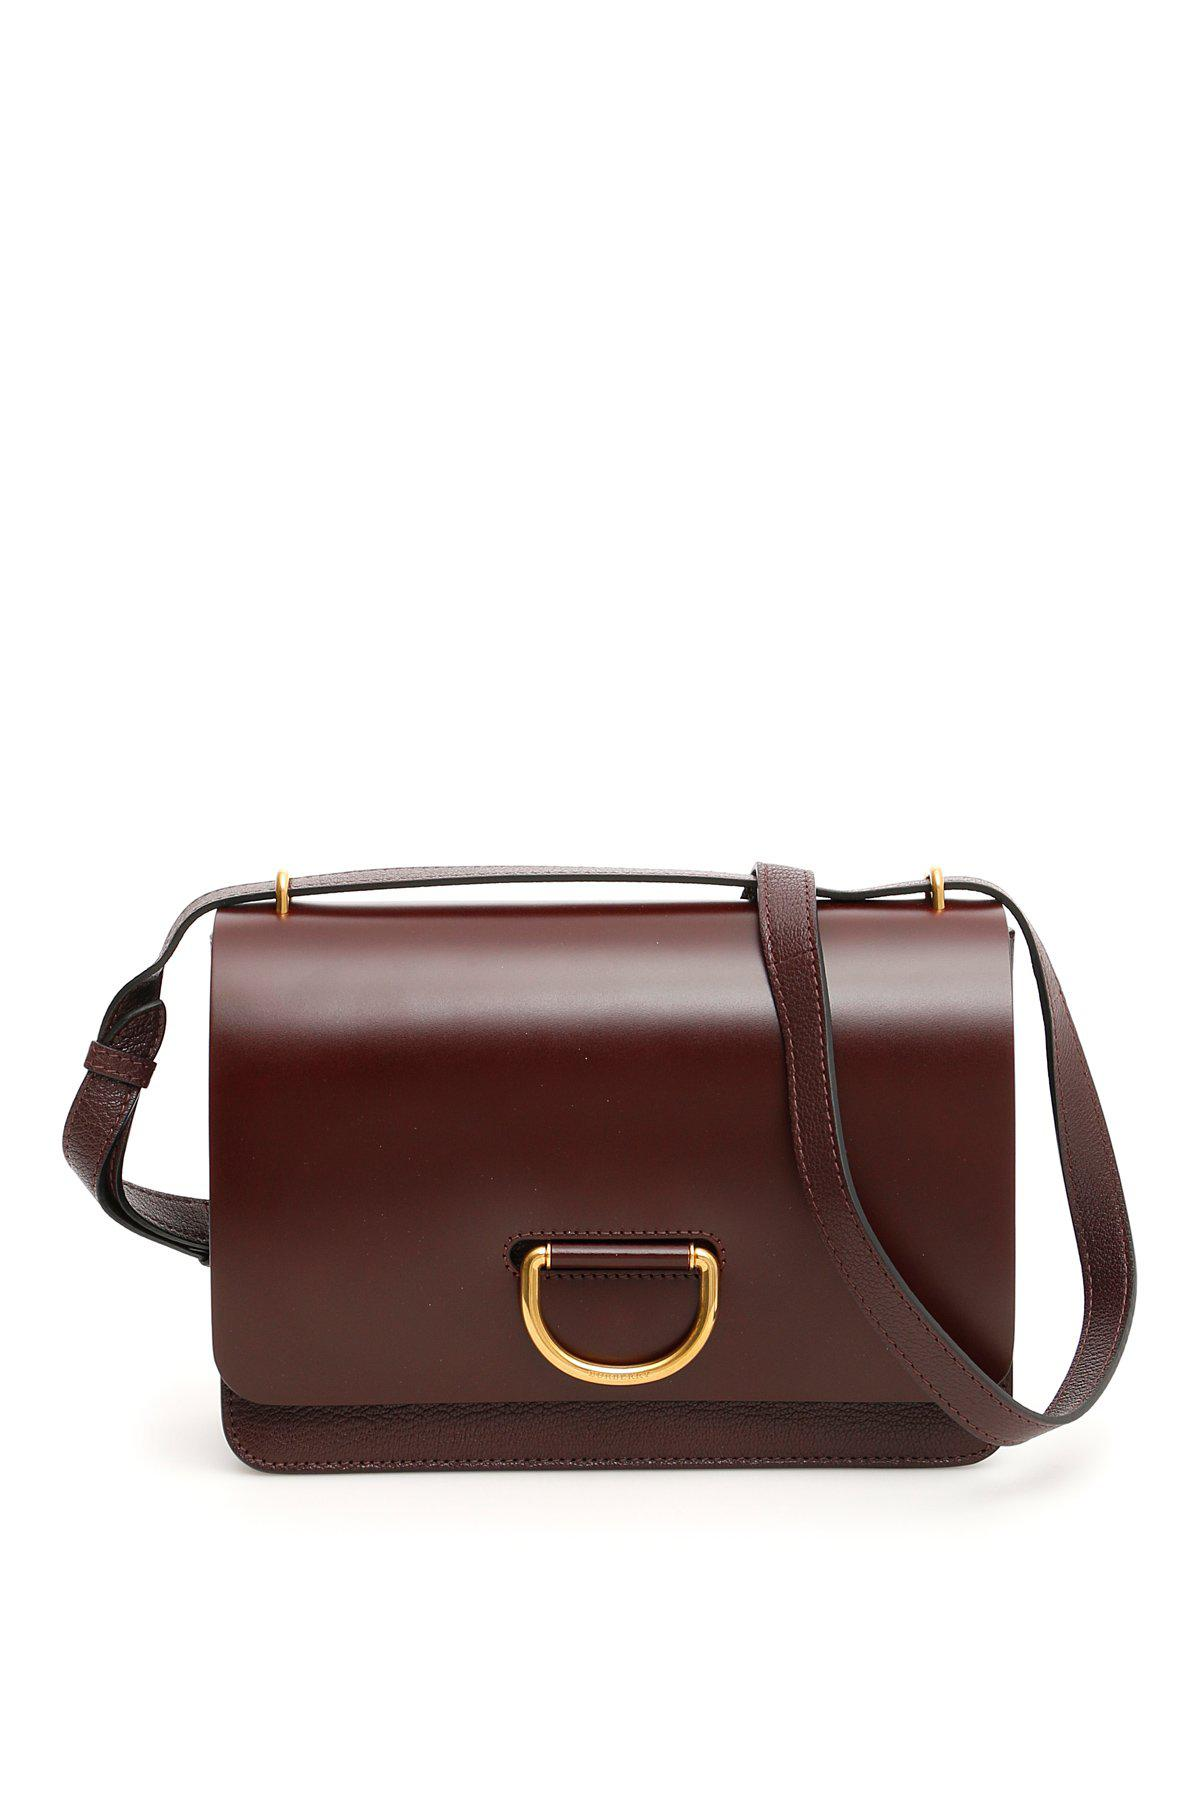 881185ca20b3 Lyst - Burberry D Ring Shoulder Bag in Brown